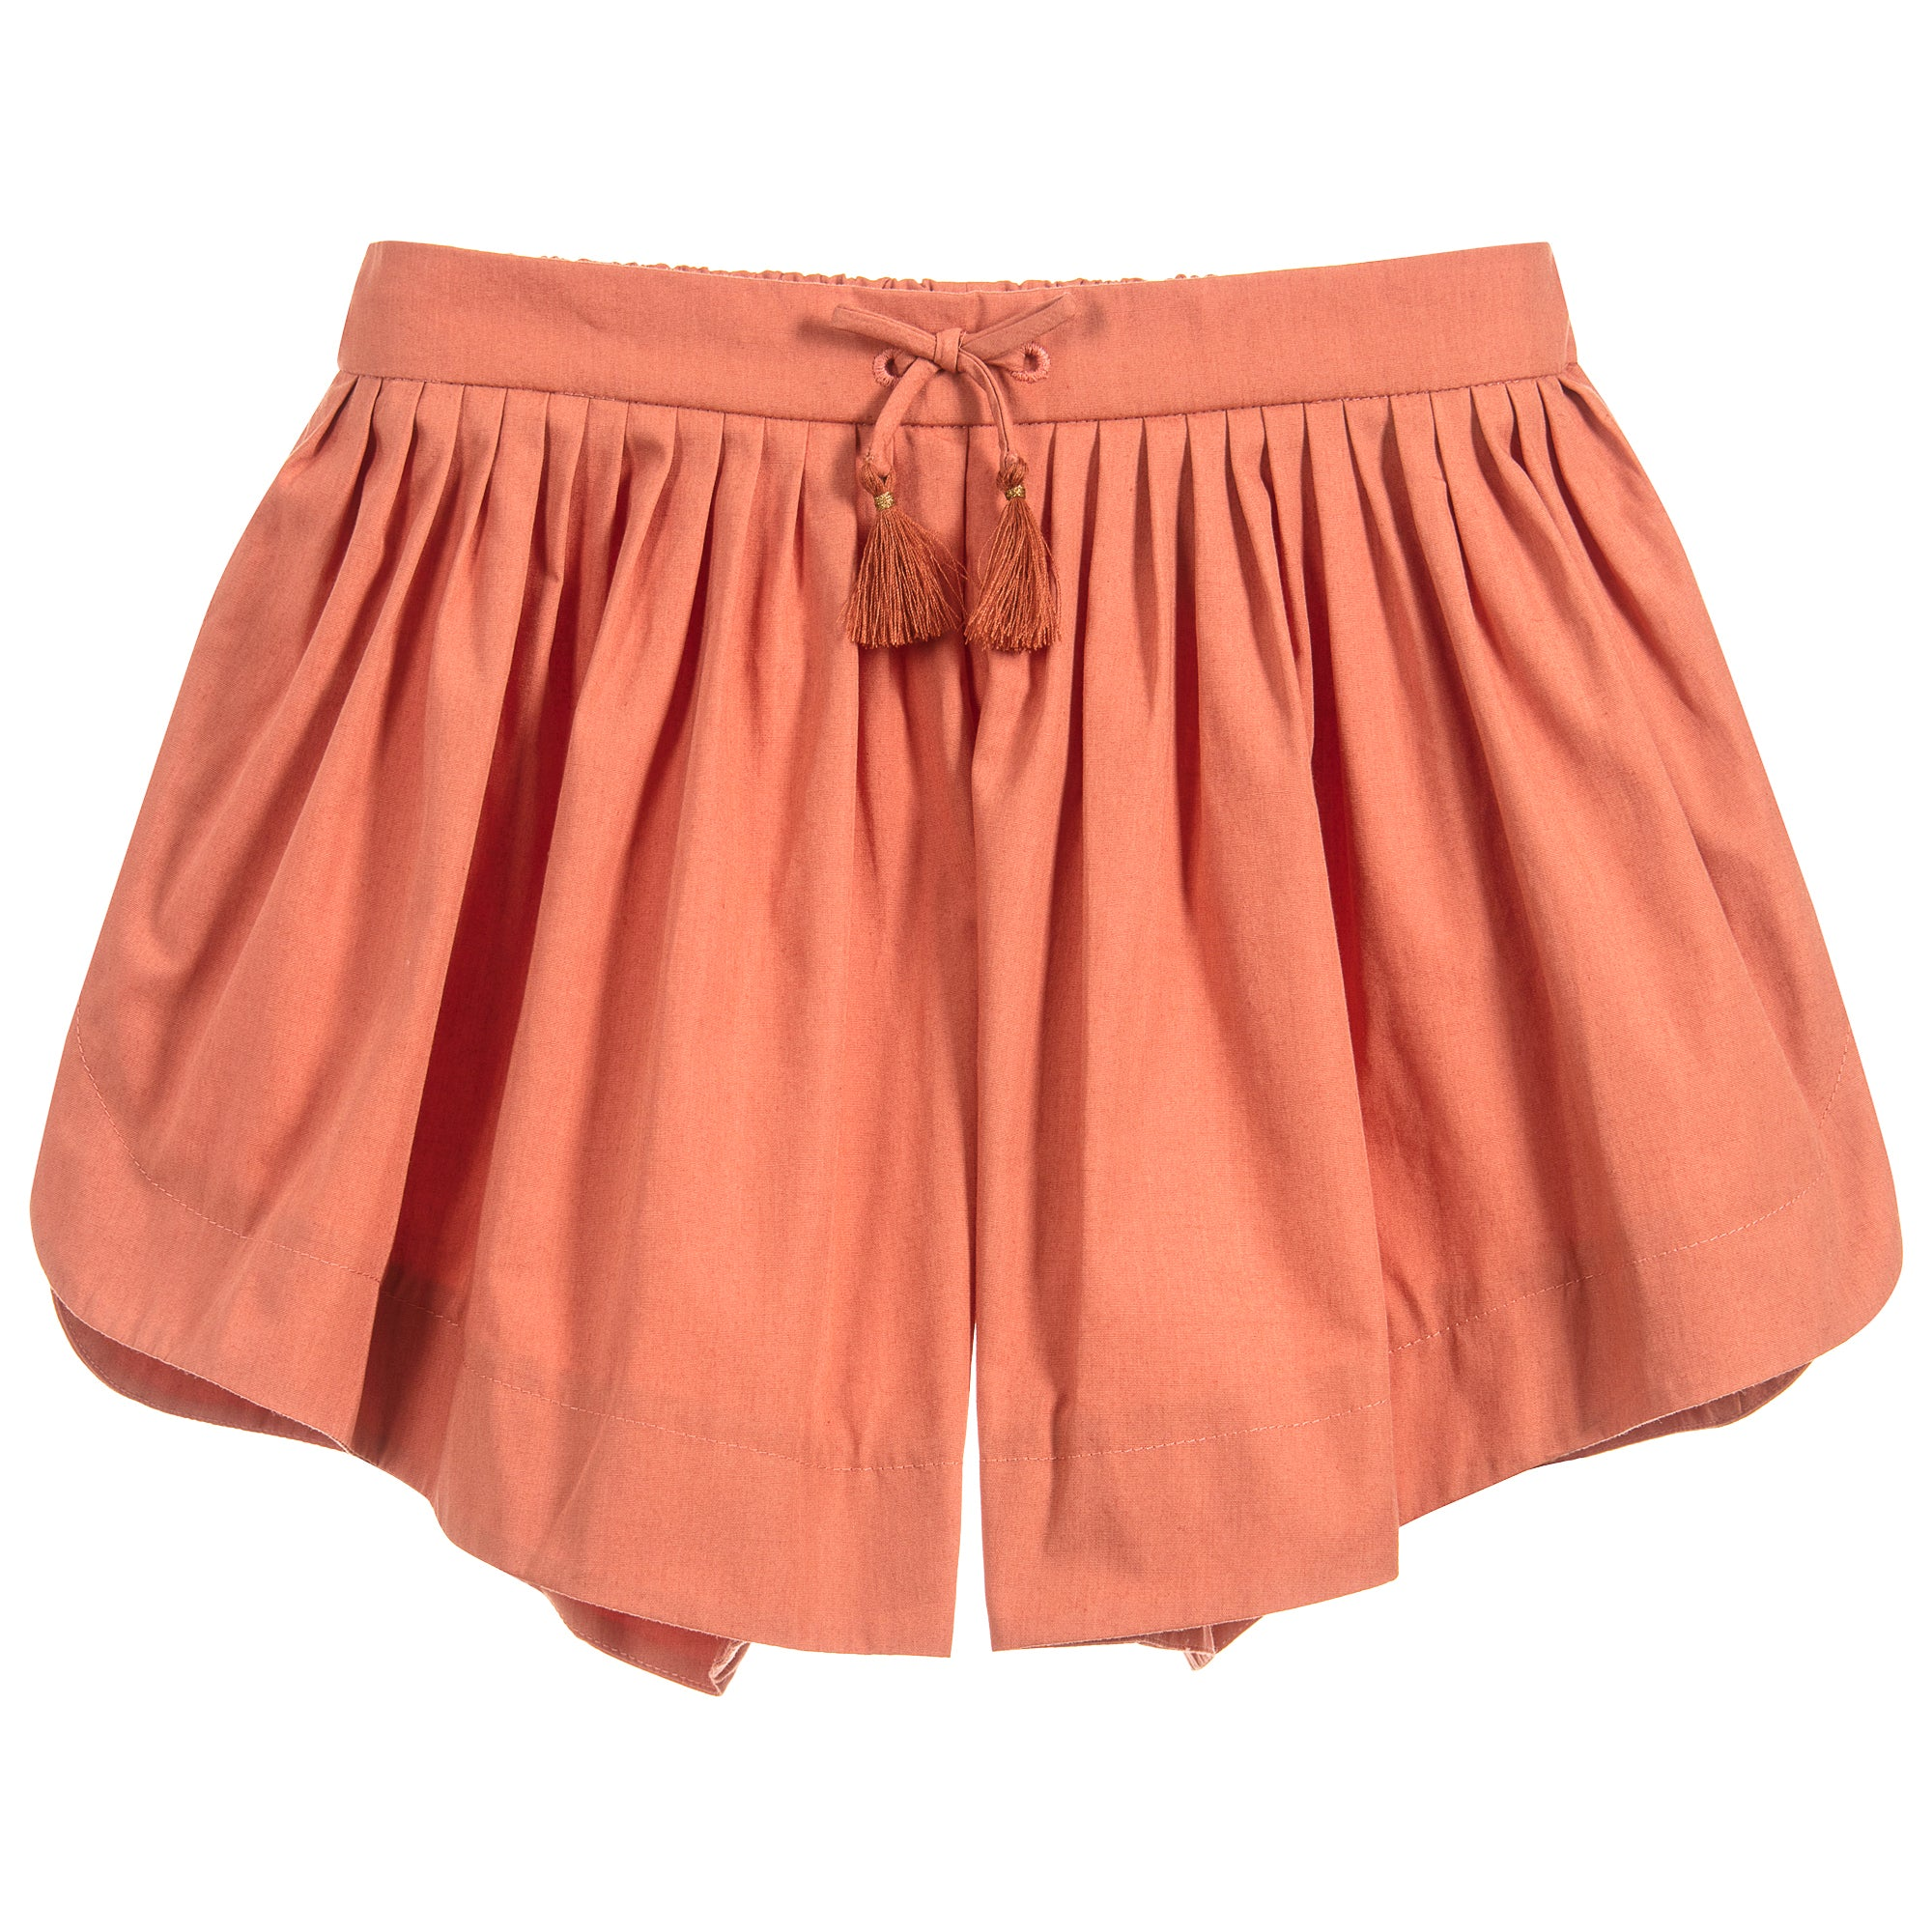 086adea57 Chloé Girls Terracotta Lightweight Poplin Shorts (Mini-Me) – Petit ...